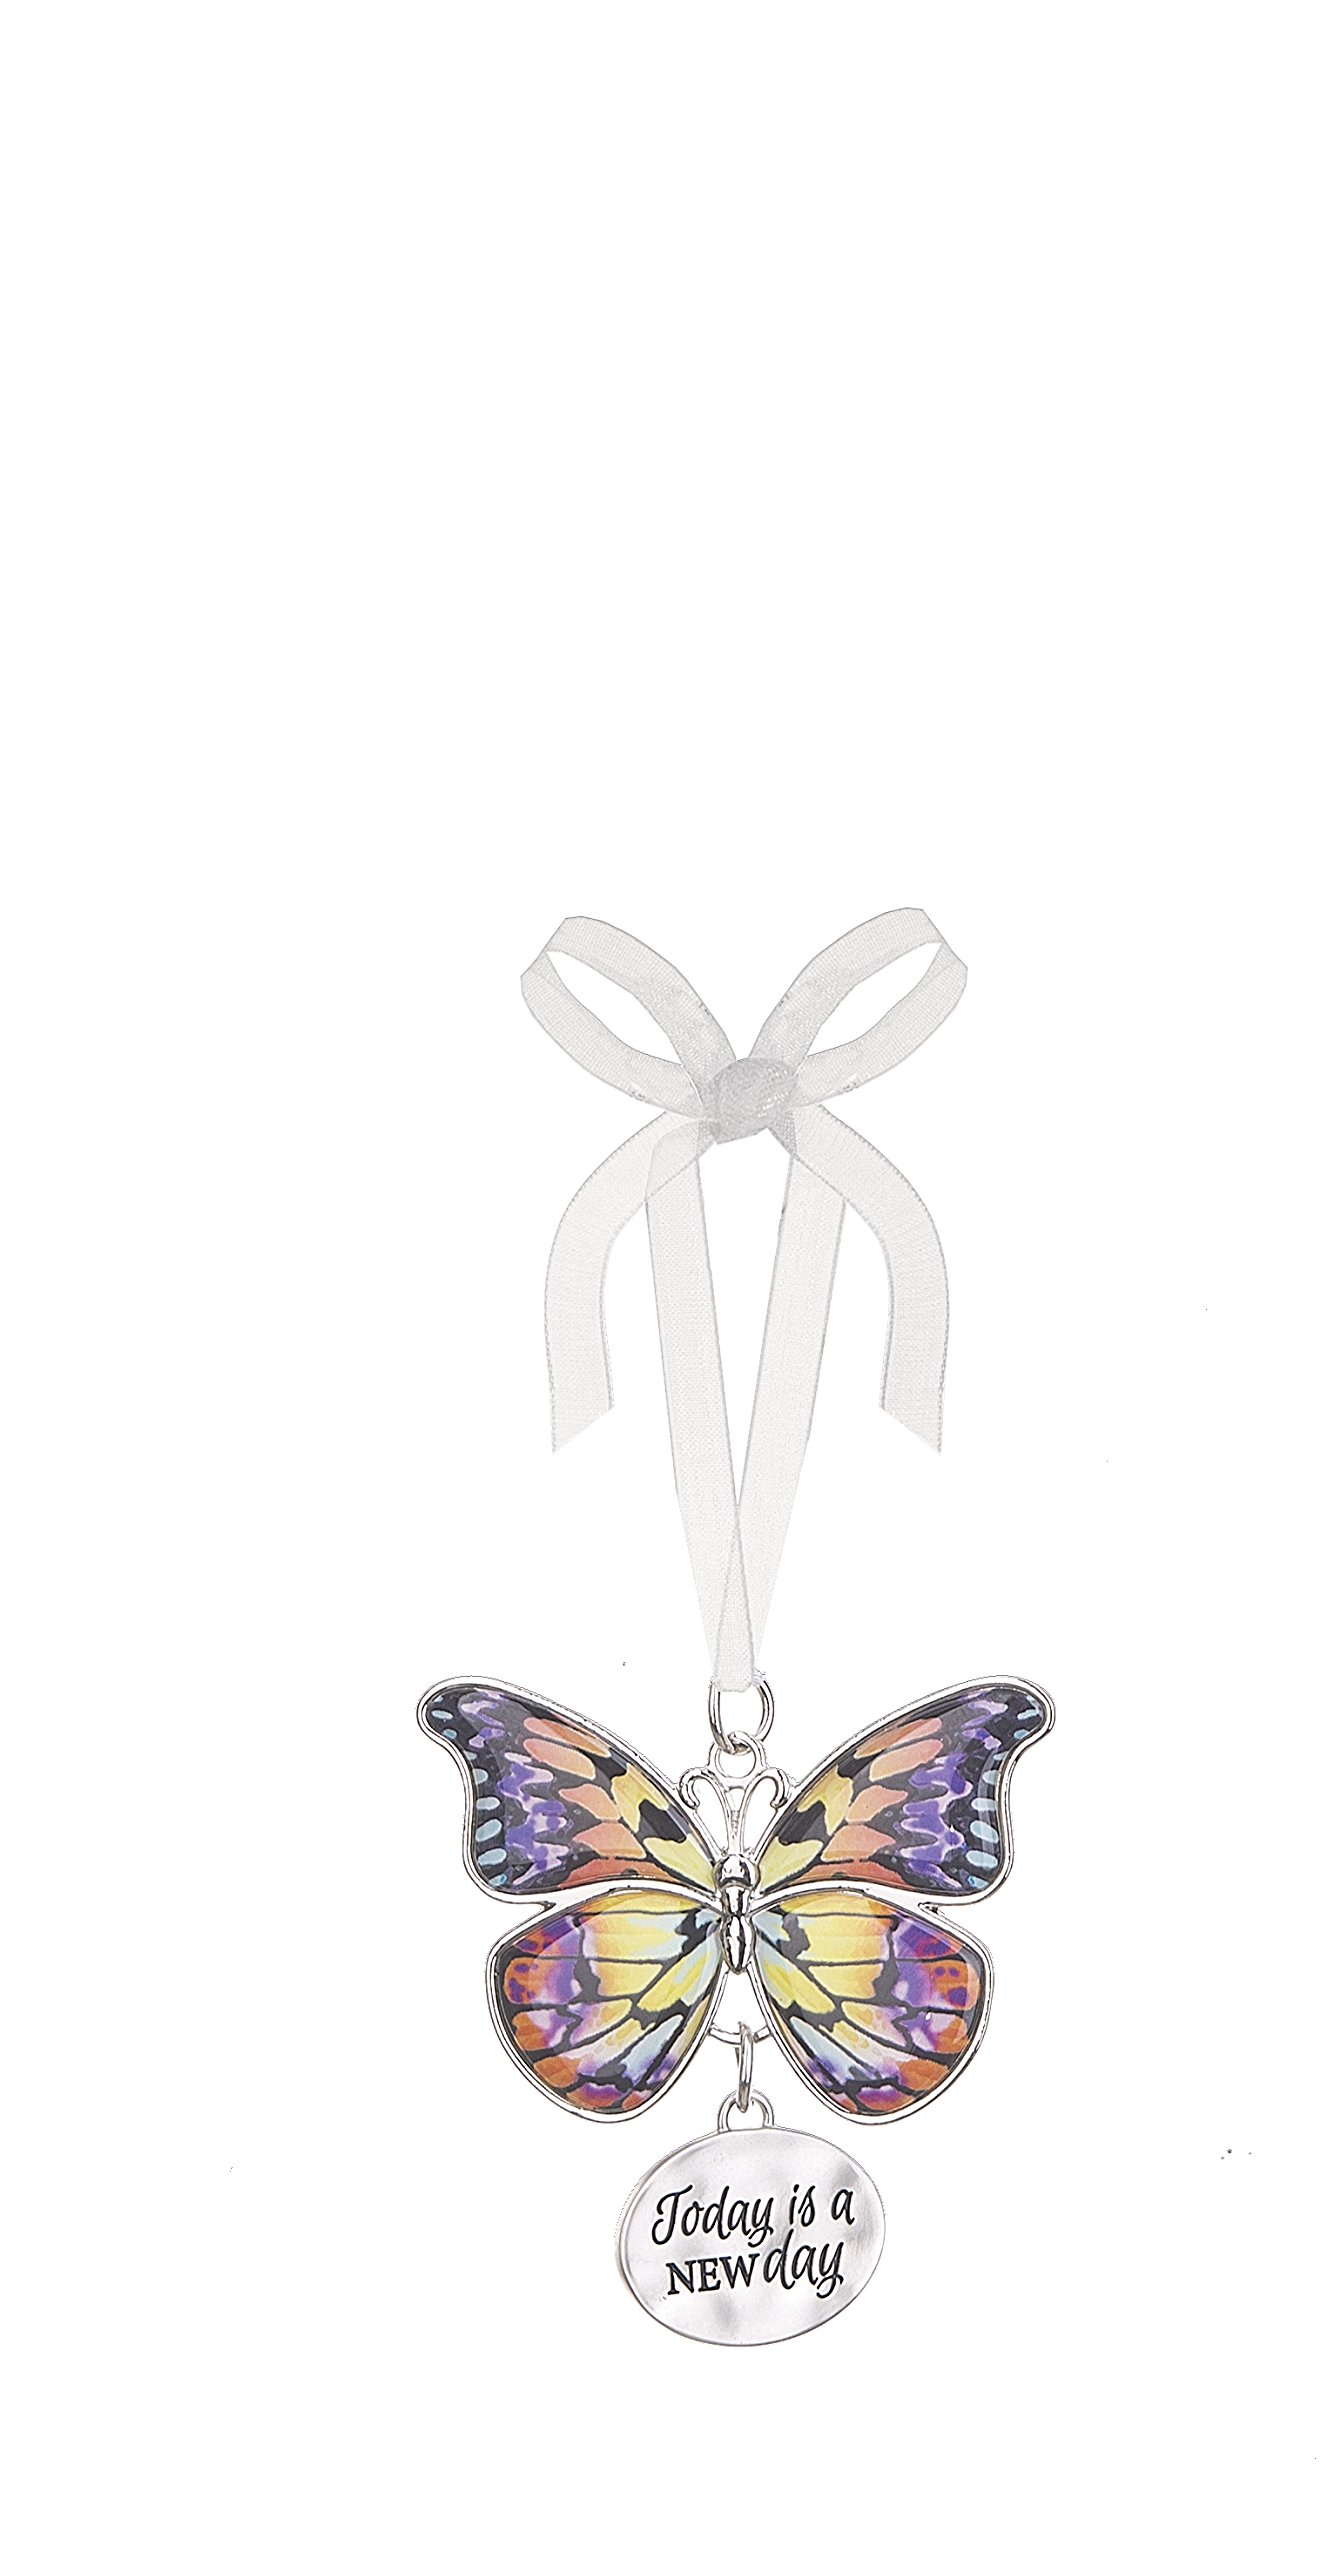 Ganz Home Decor Christmas/Spring Blissful Journey Butterfly Ornament (Today is a New Day EA13551)